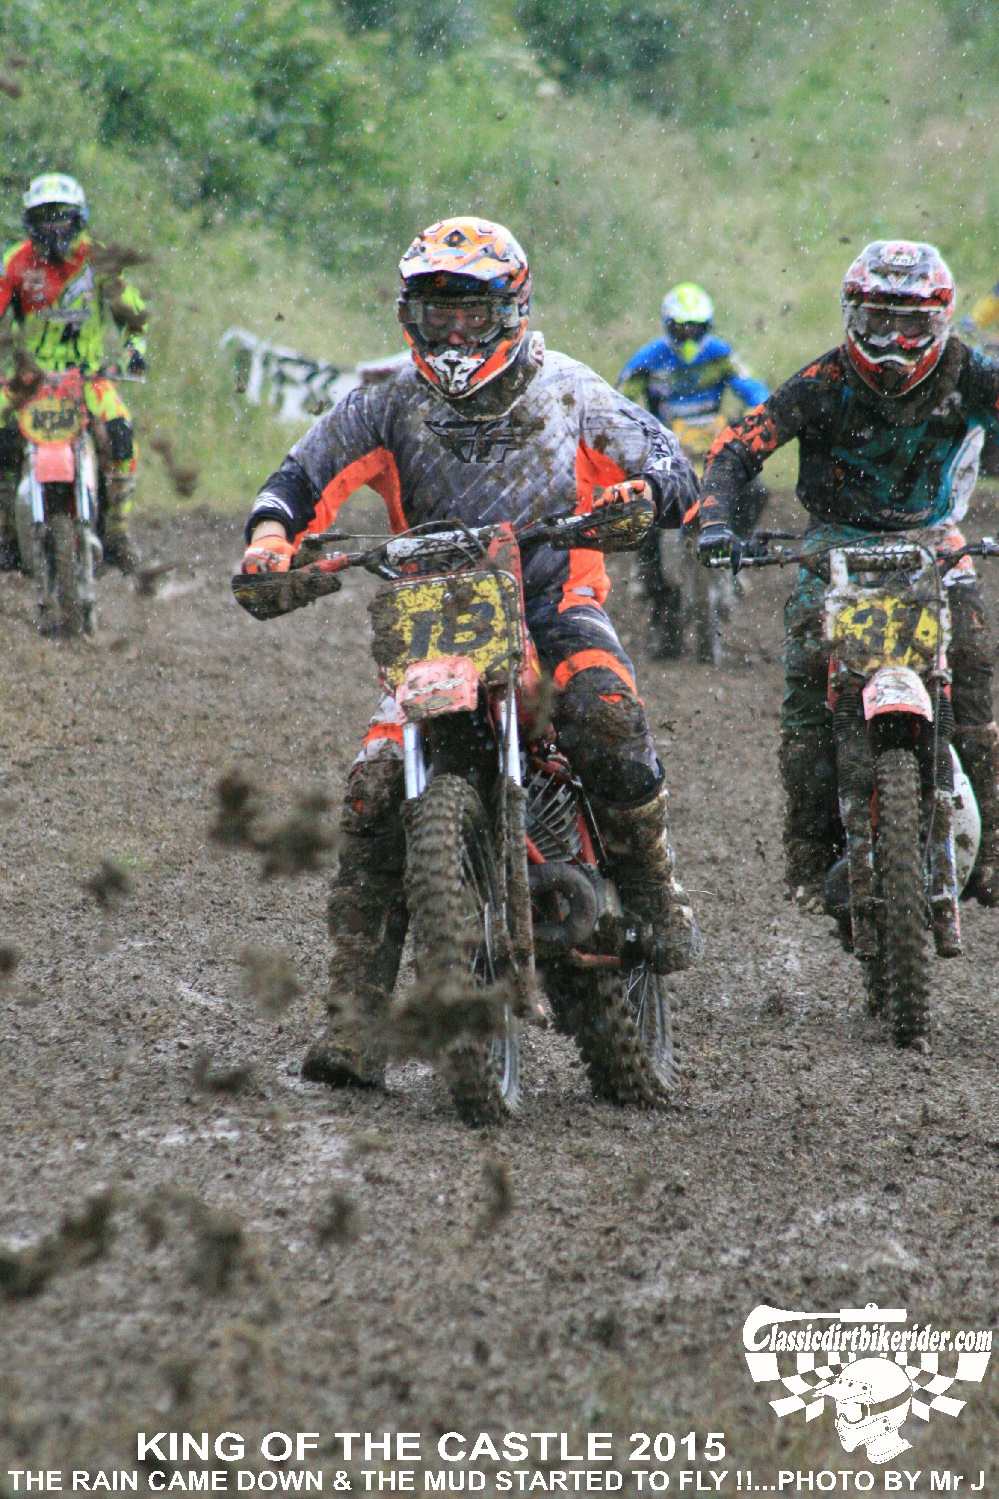 king of the castle 2015 photos Farleigh Castle twinshock motocross classicdirtbikerider.com 123